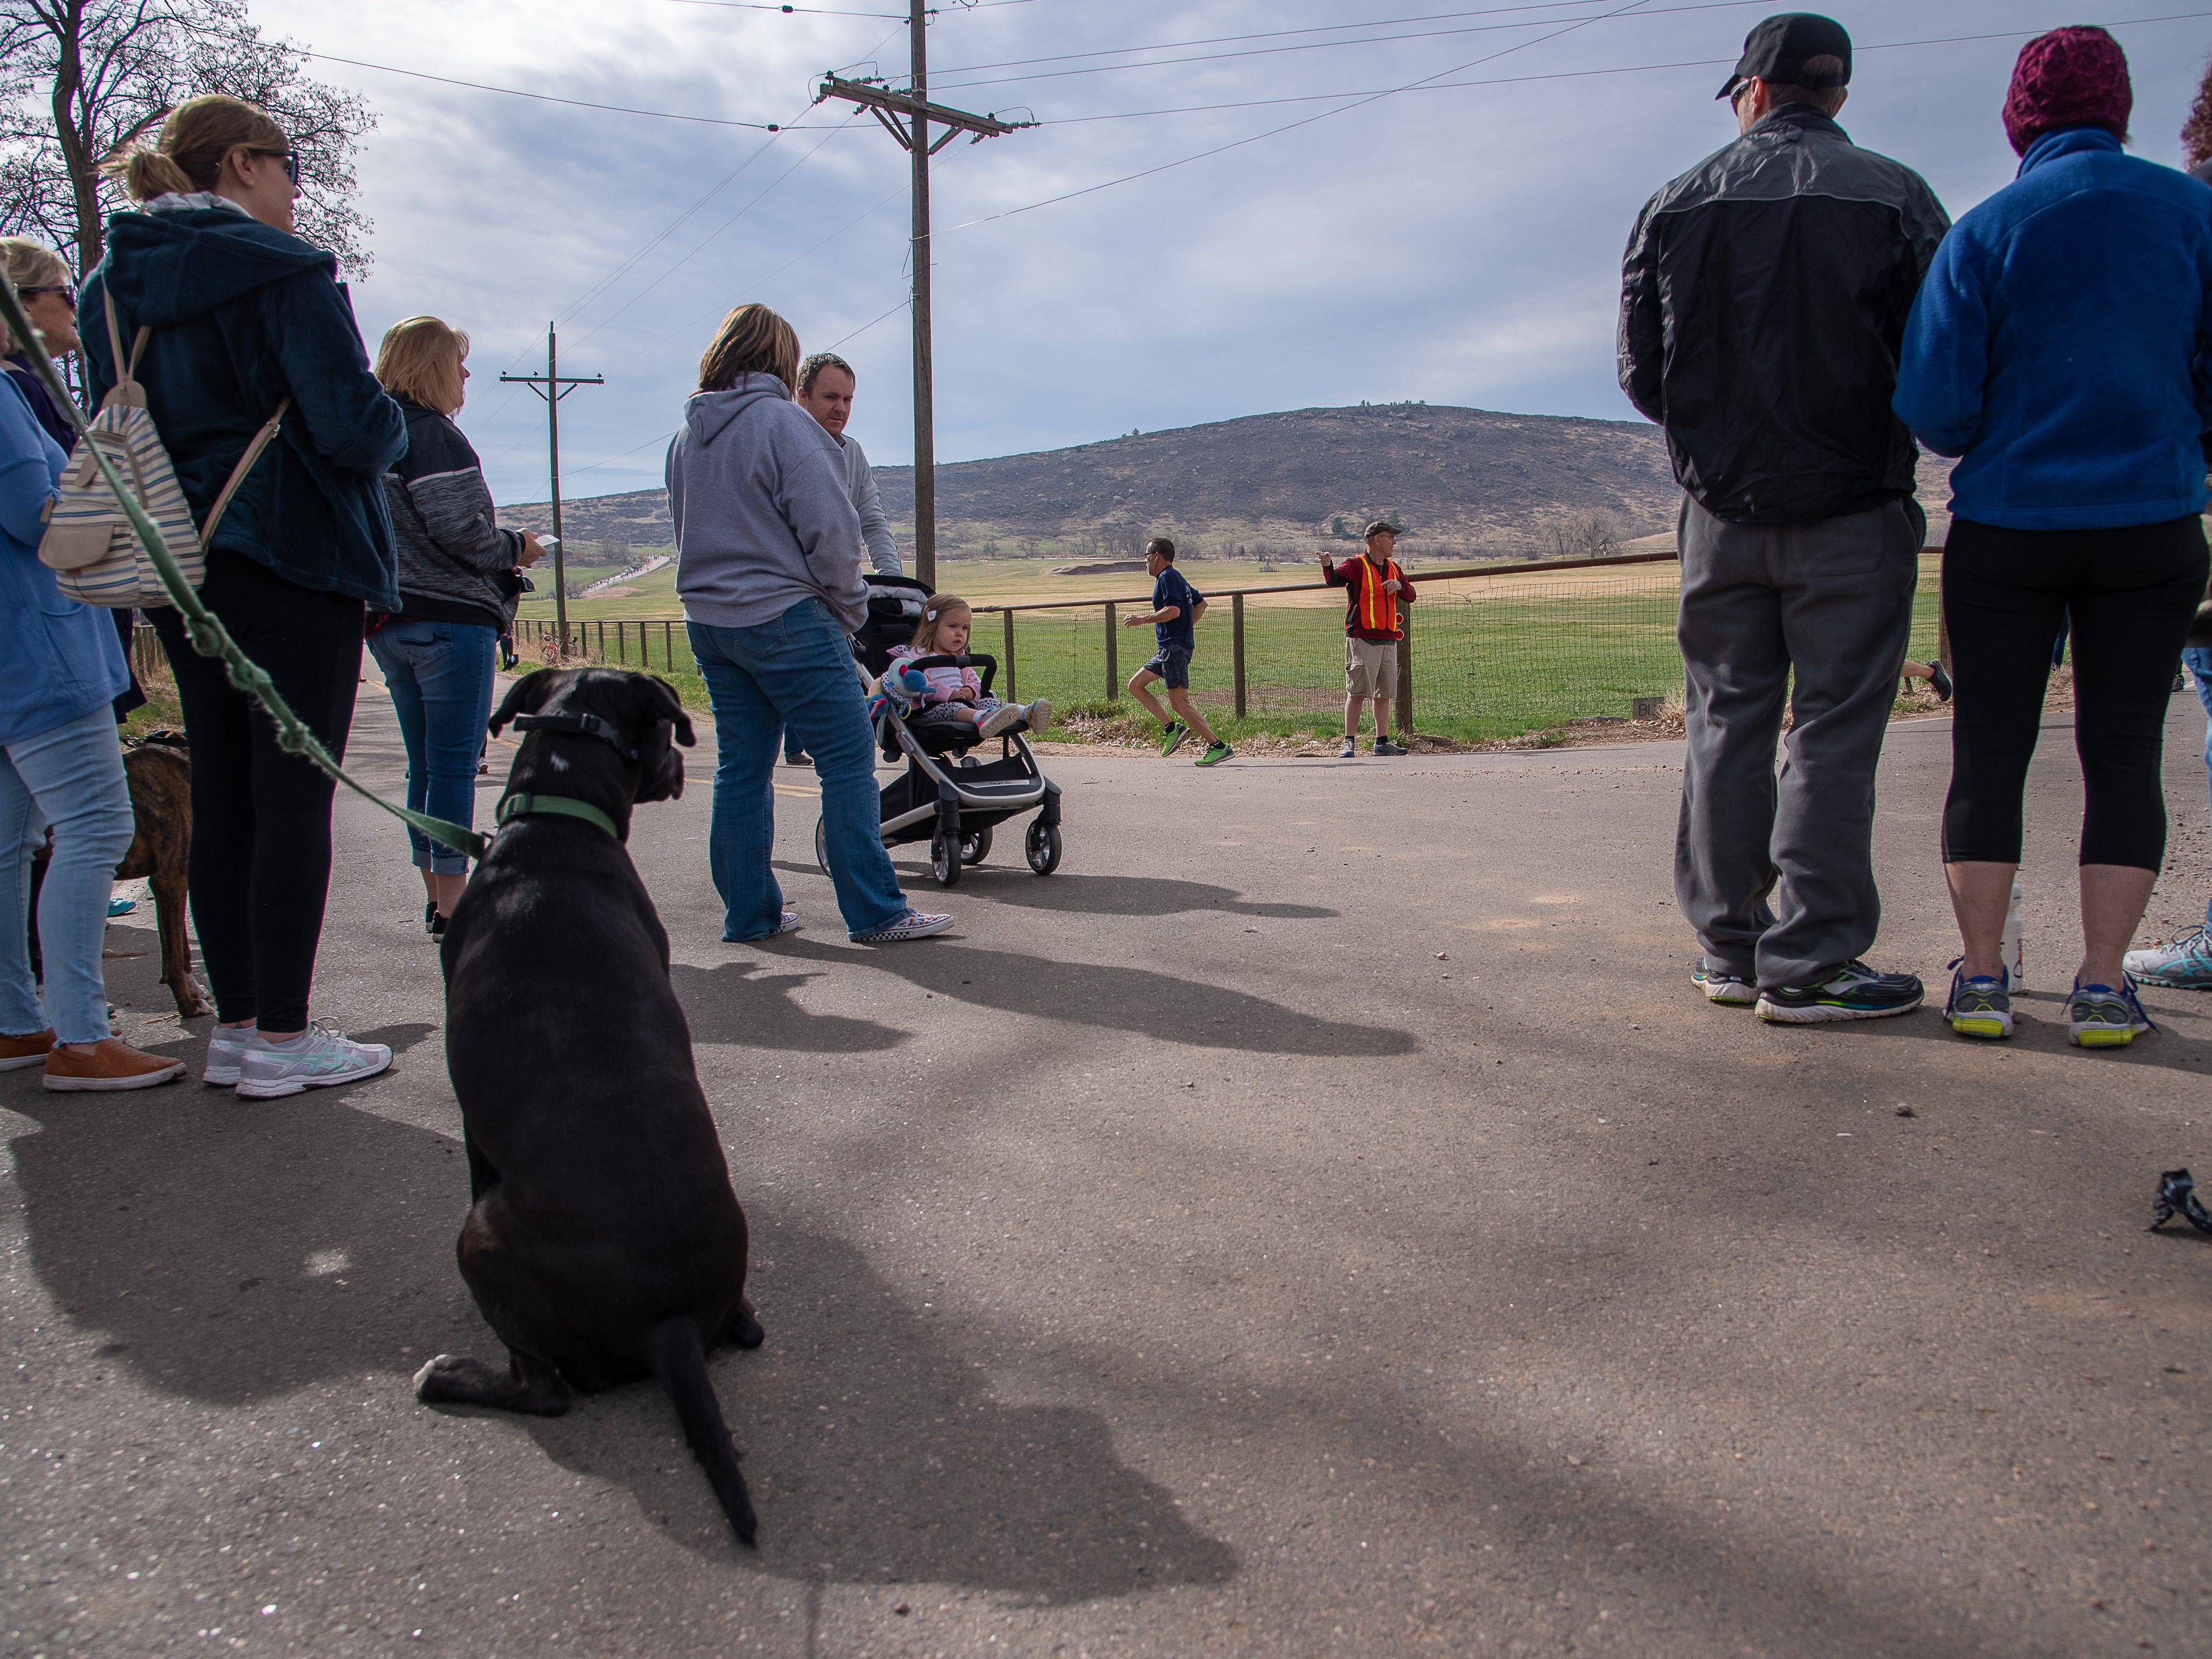 Spectators gather near Bingham Hill Road during the Horsetooth Half Marathon on Sunday, April 14, 2019, in Fort Collins, Colo.